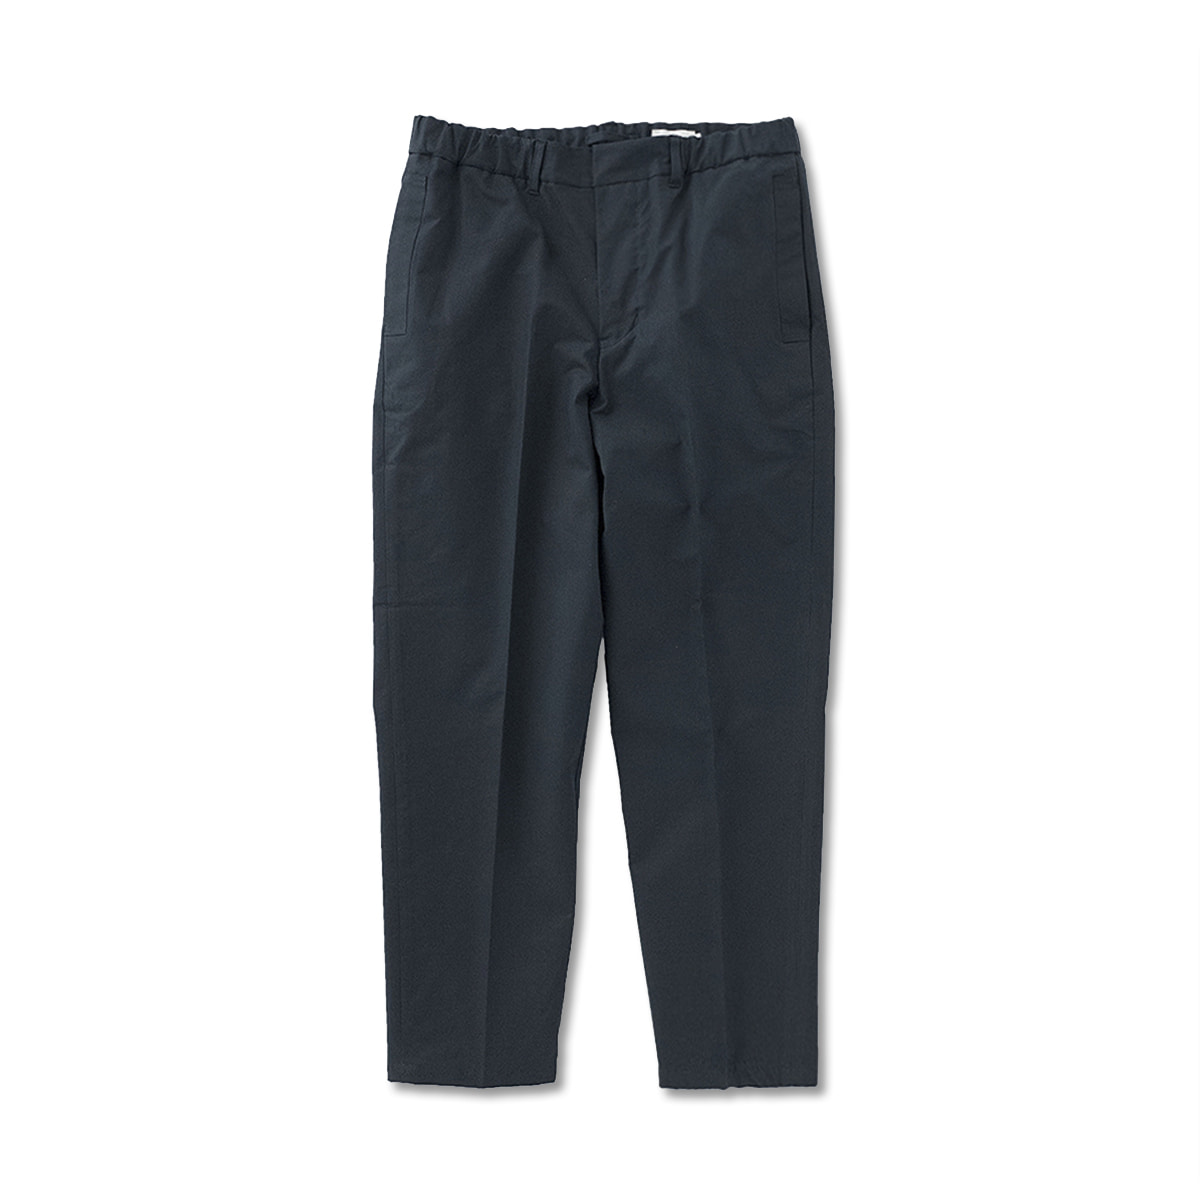 [STILL BY HAND] PT0493OS - COTTON TAPERED PANTS 'NAVY'